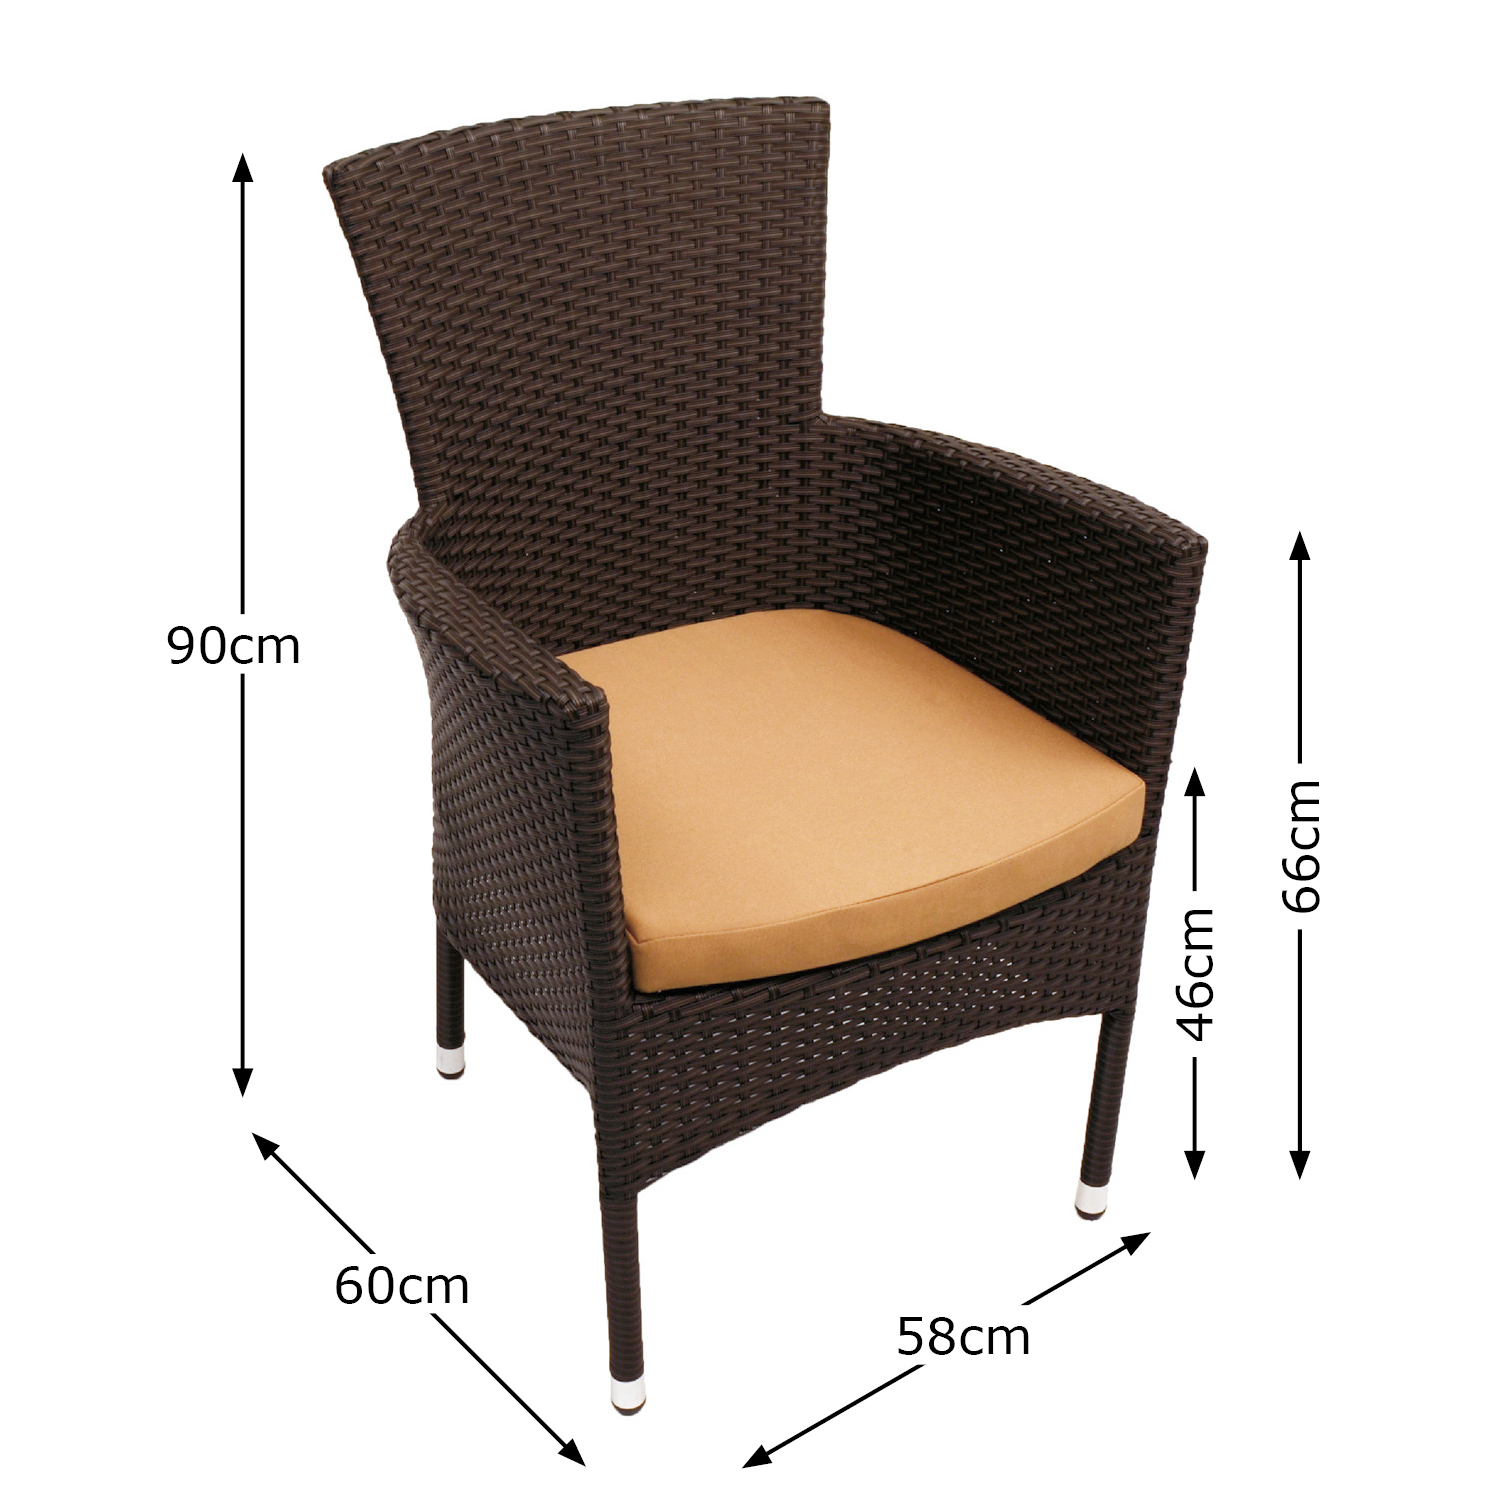 STOCKHOLM CHAIR BROWN DIMENSION MS1